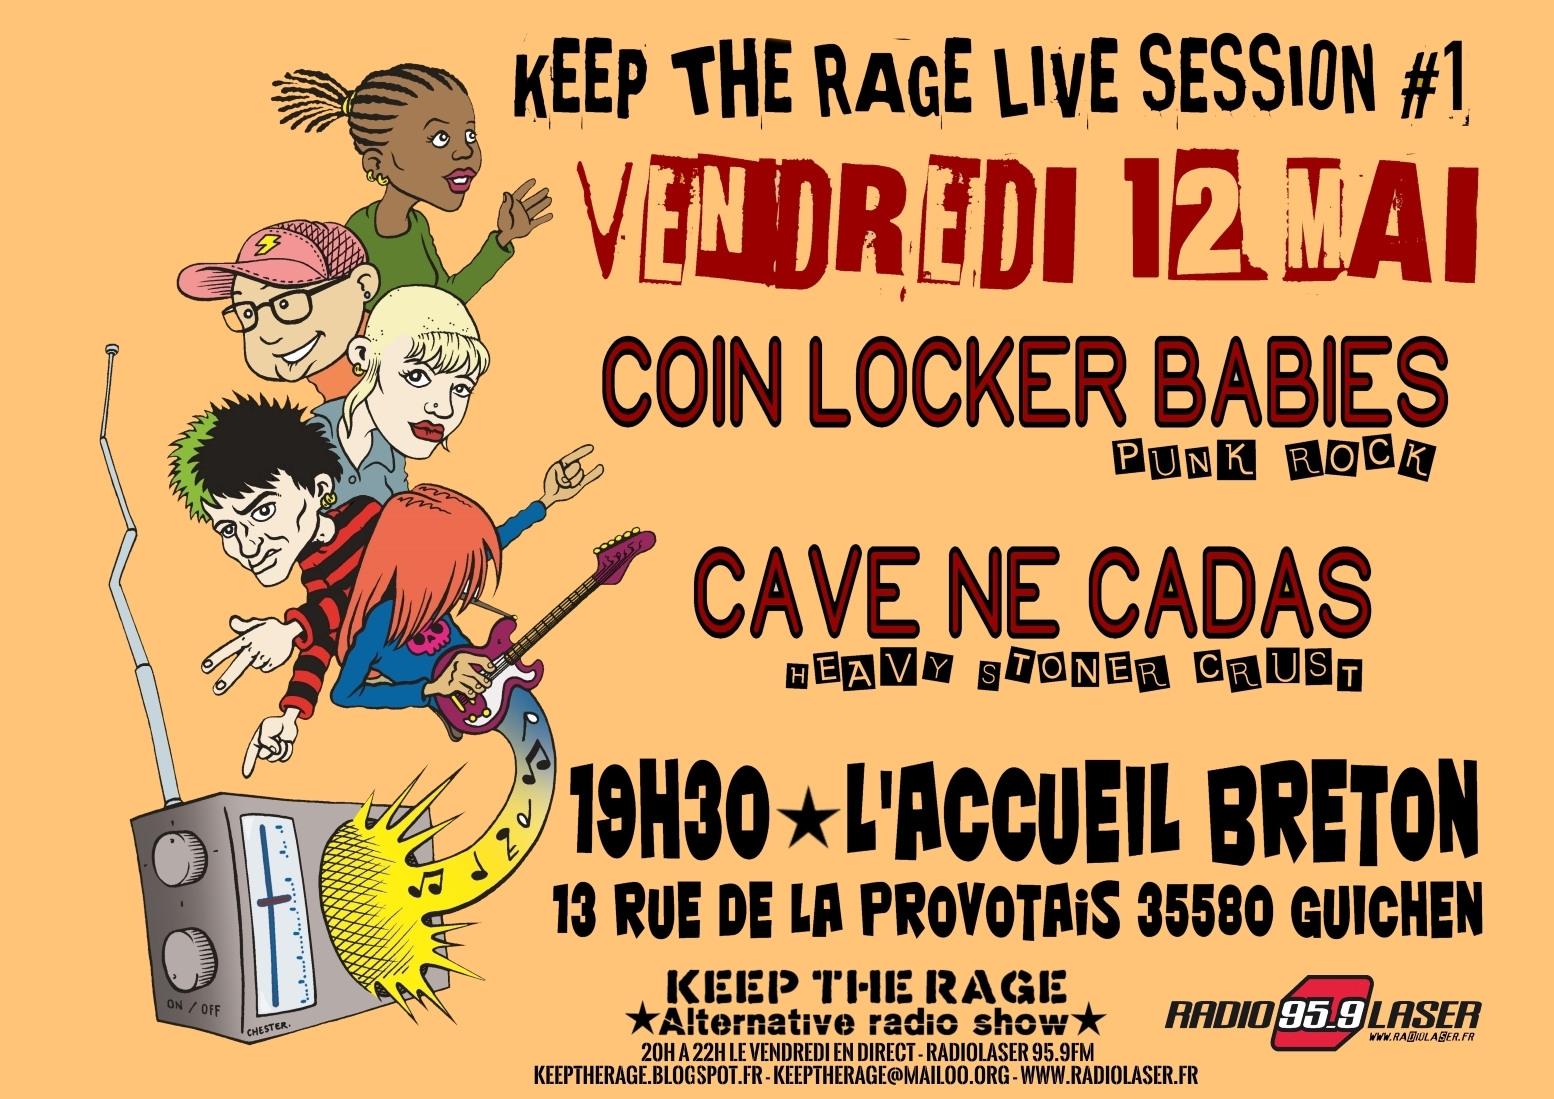 Vendredi 12 mai - KEEP THE RAGE LIVE SESSION #1 - L'accueil Breton à Guichen